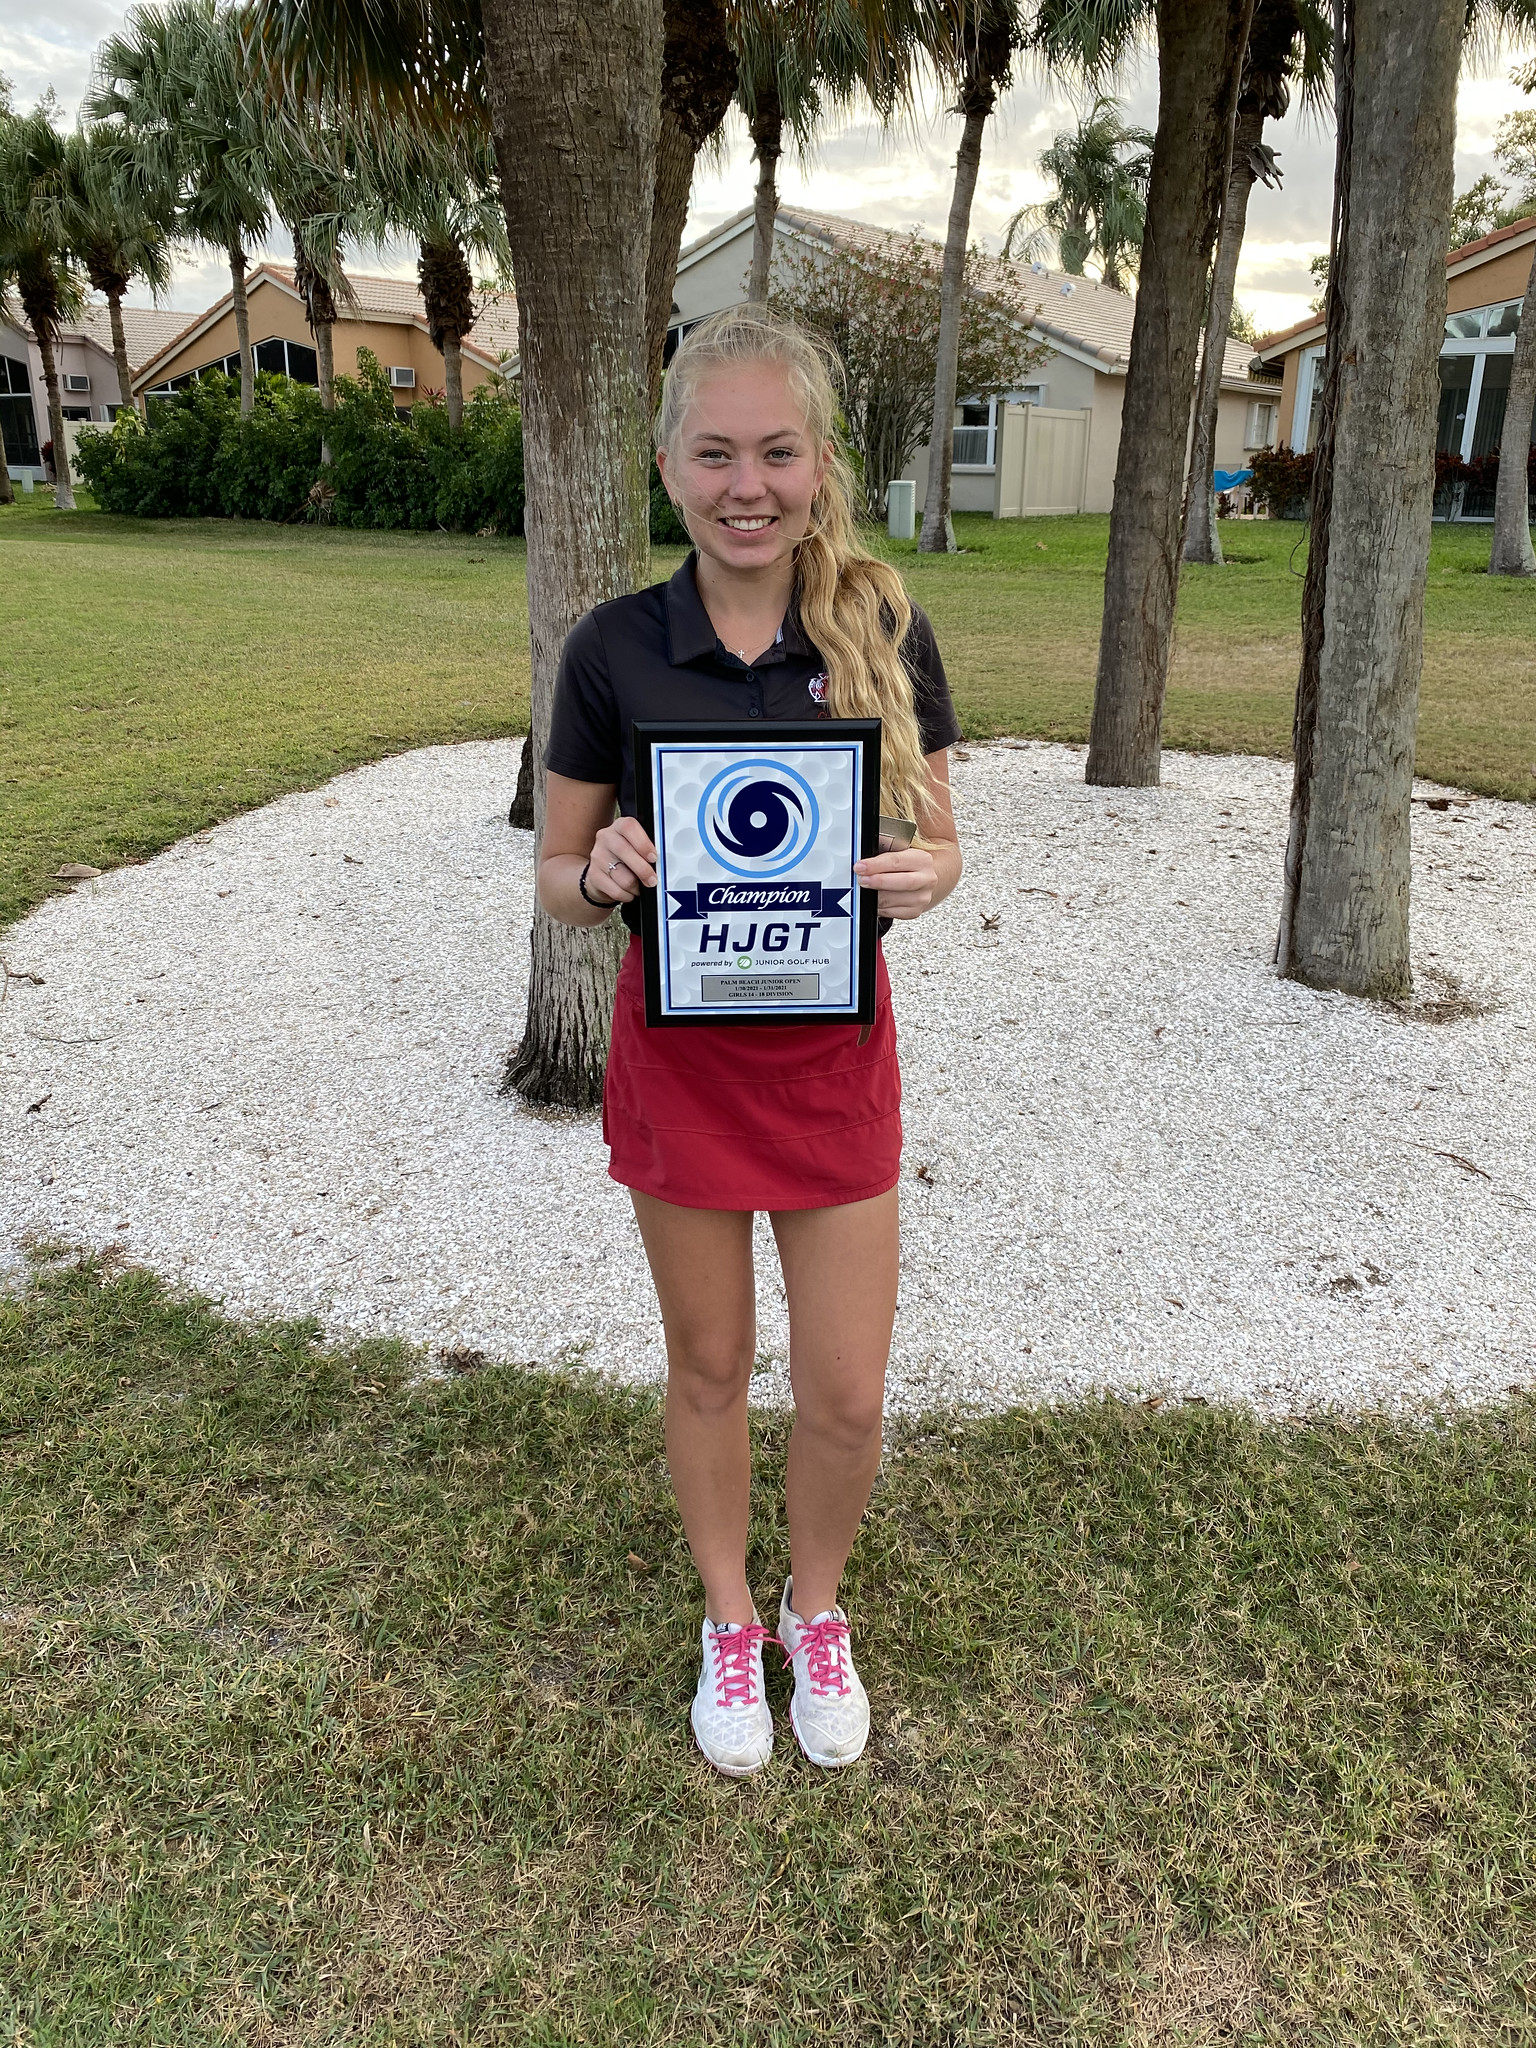 Palm Beach Junior Open